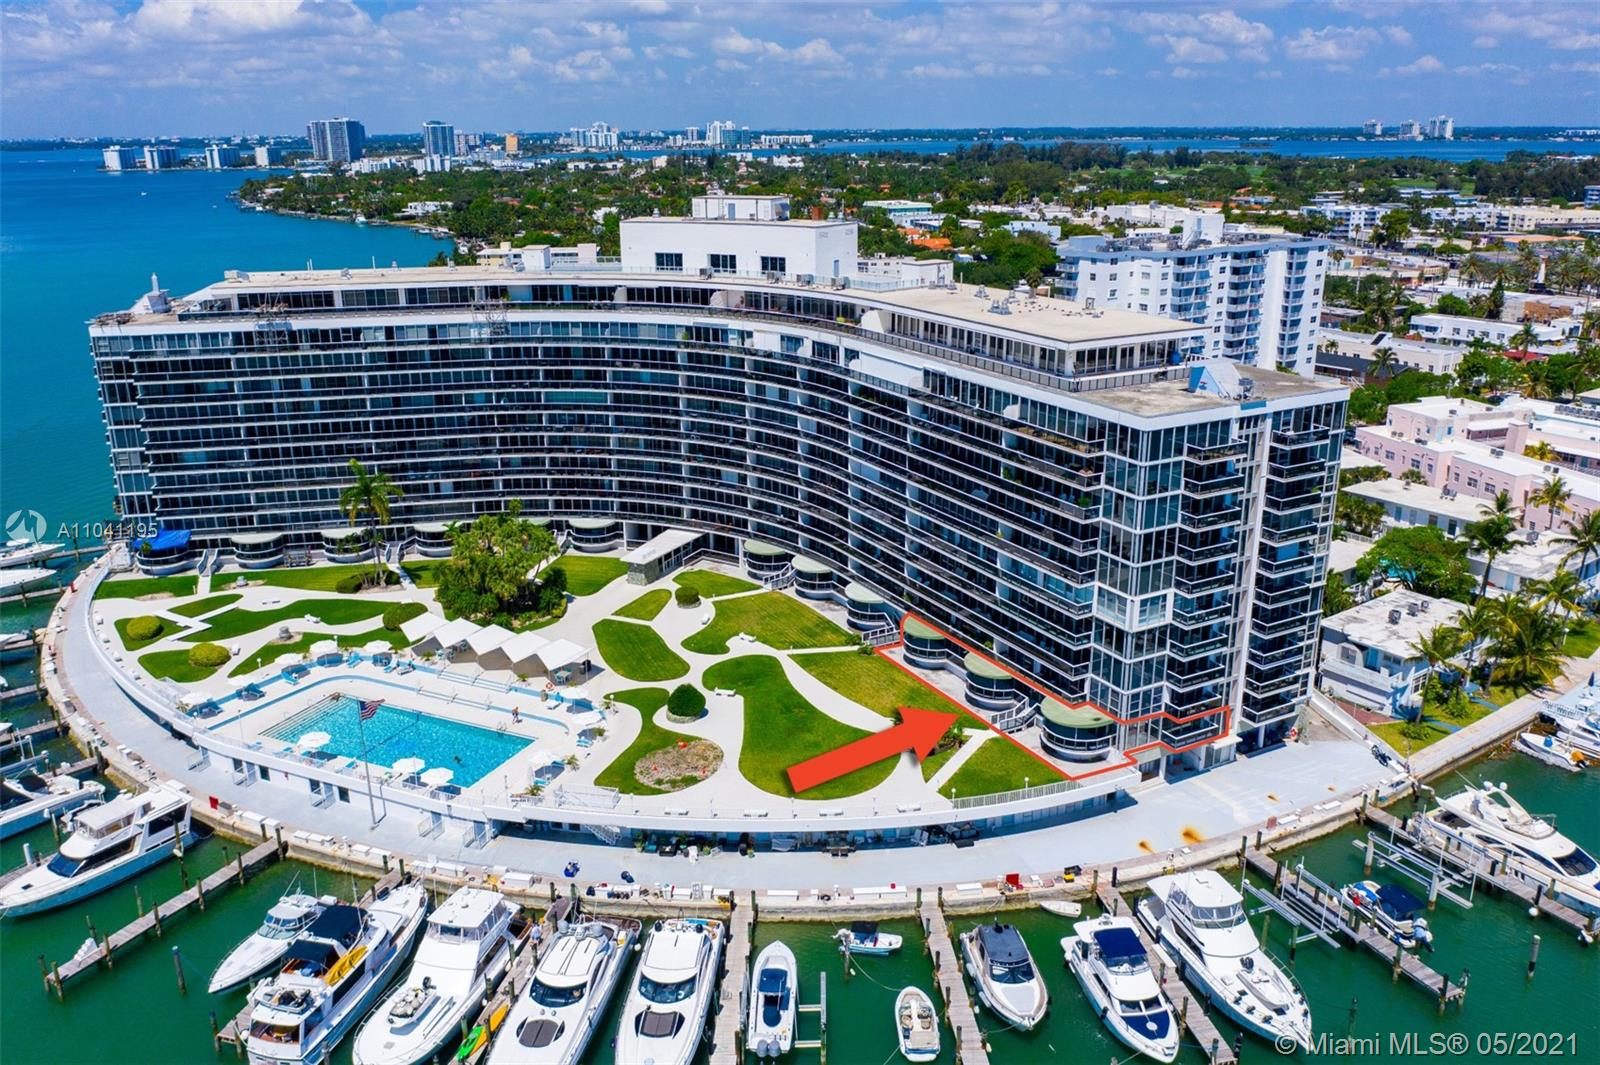 A perfect opportunity to remodel or renovate this 3,300 square foot unit (as per owner) and make it your very own. This corner unit at the King Cole Condominium in Normandy Isles consists of two combined units features floor to ceiling windows, 3 large ground floor terraces with unobstructed views to the Intracoastal Waterway, Biscayne Bay with sunrise and sunset views. It includes 2 deeded parking spaces and first floor access to the beautiful grounds, the pool area and the boat slips. Perfectly located, just minutes to fine dining, shops, entertainment, and the beaches.